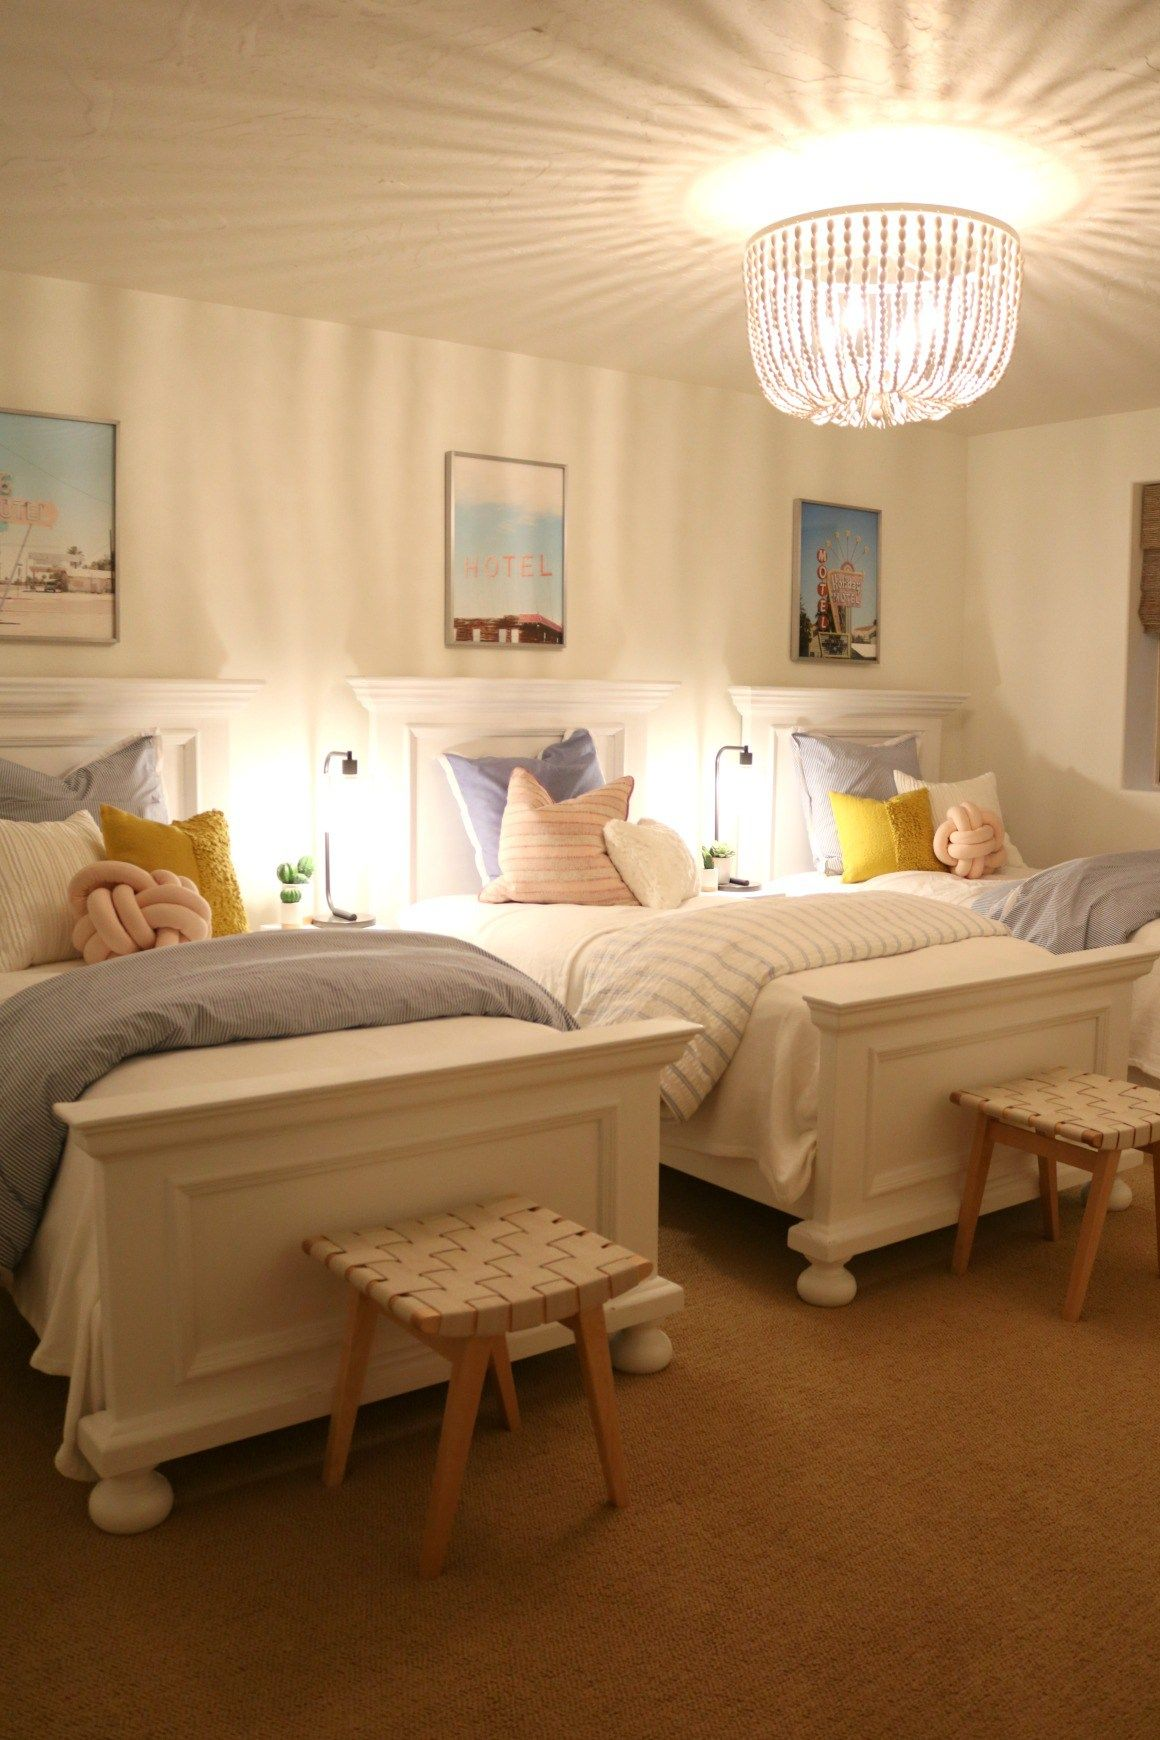 Bedding and Bedroom Makeover-Simple Tips images